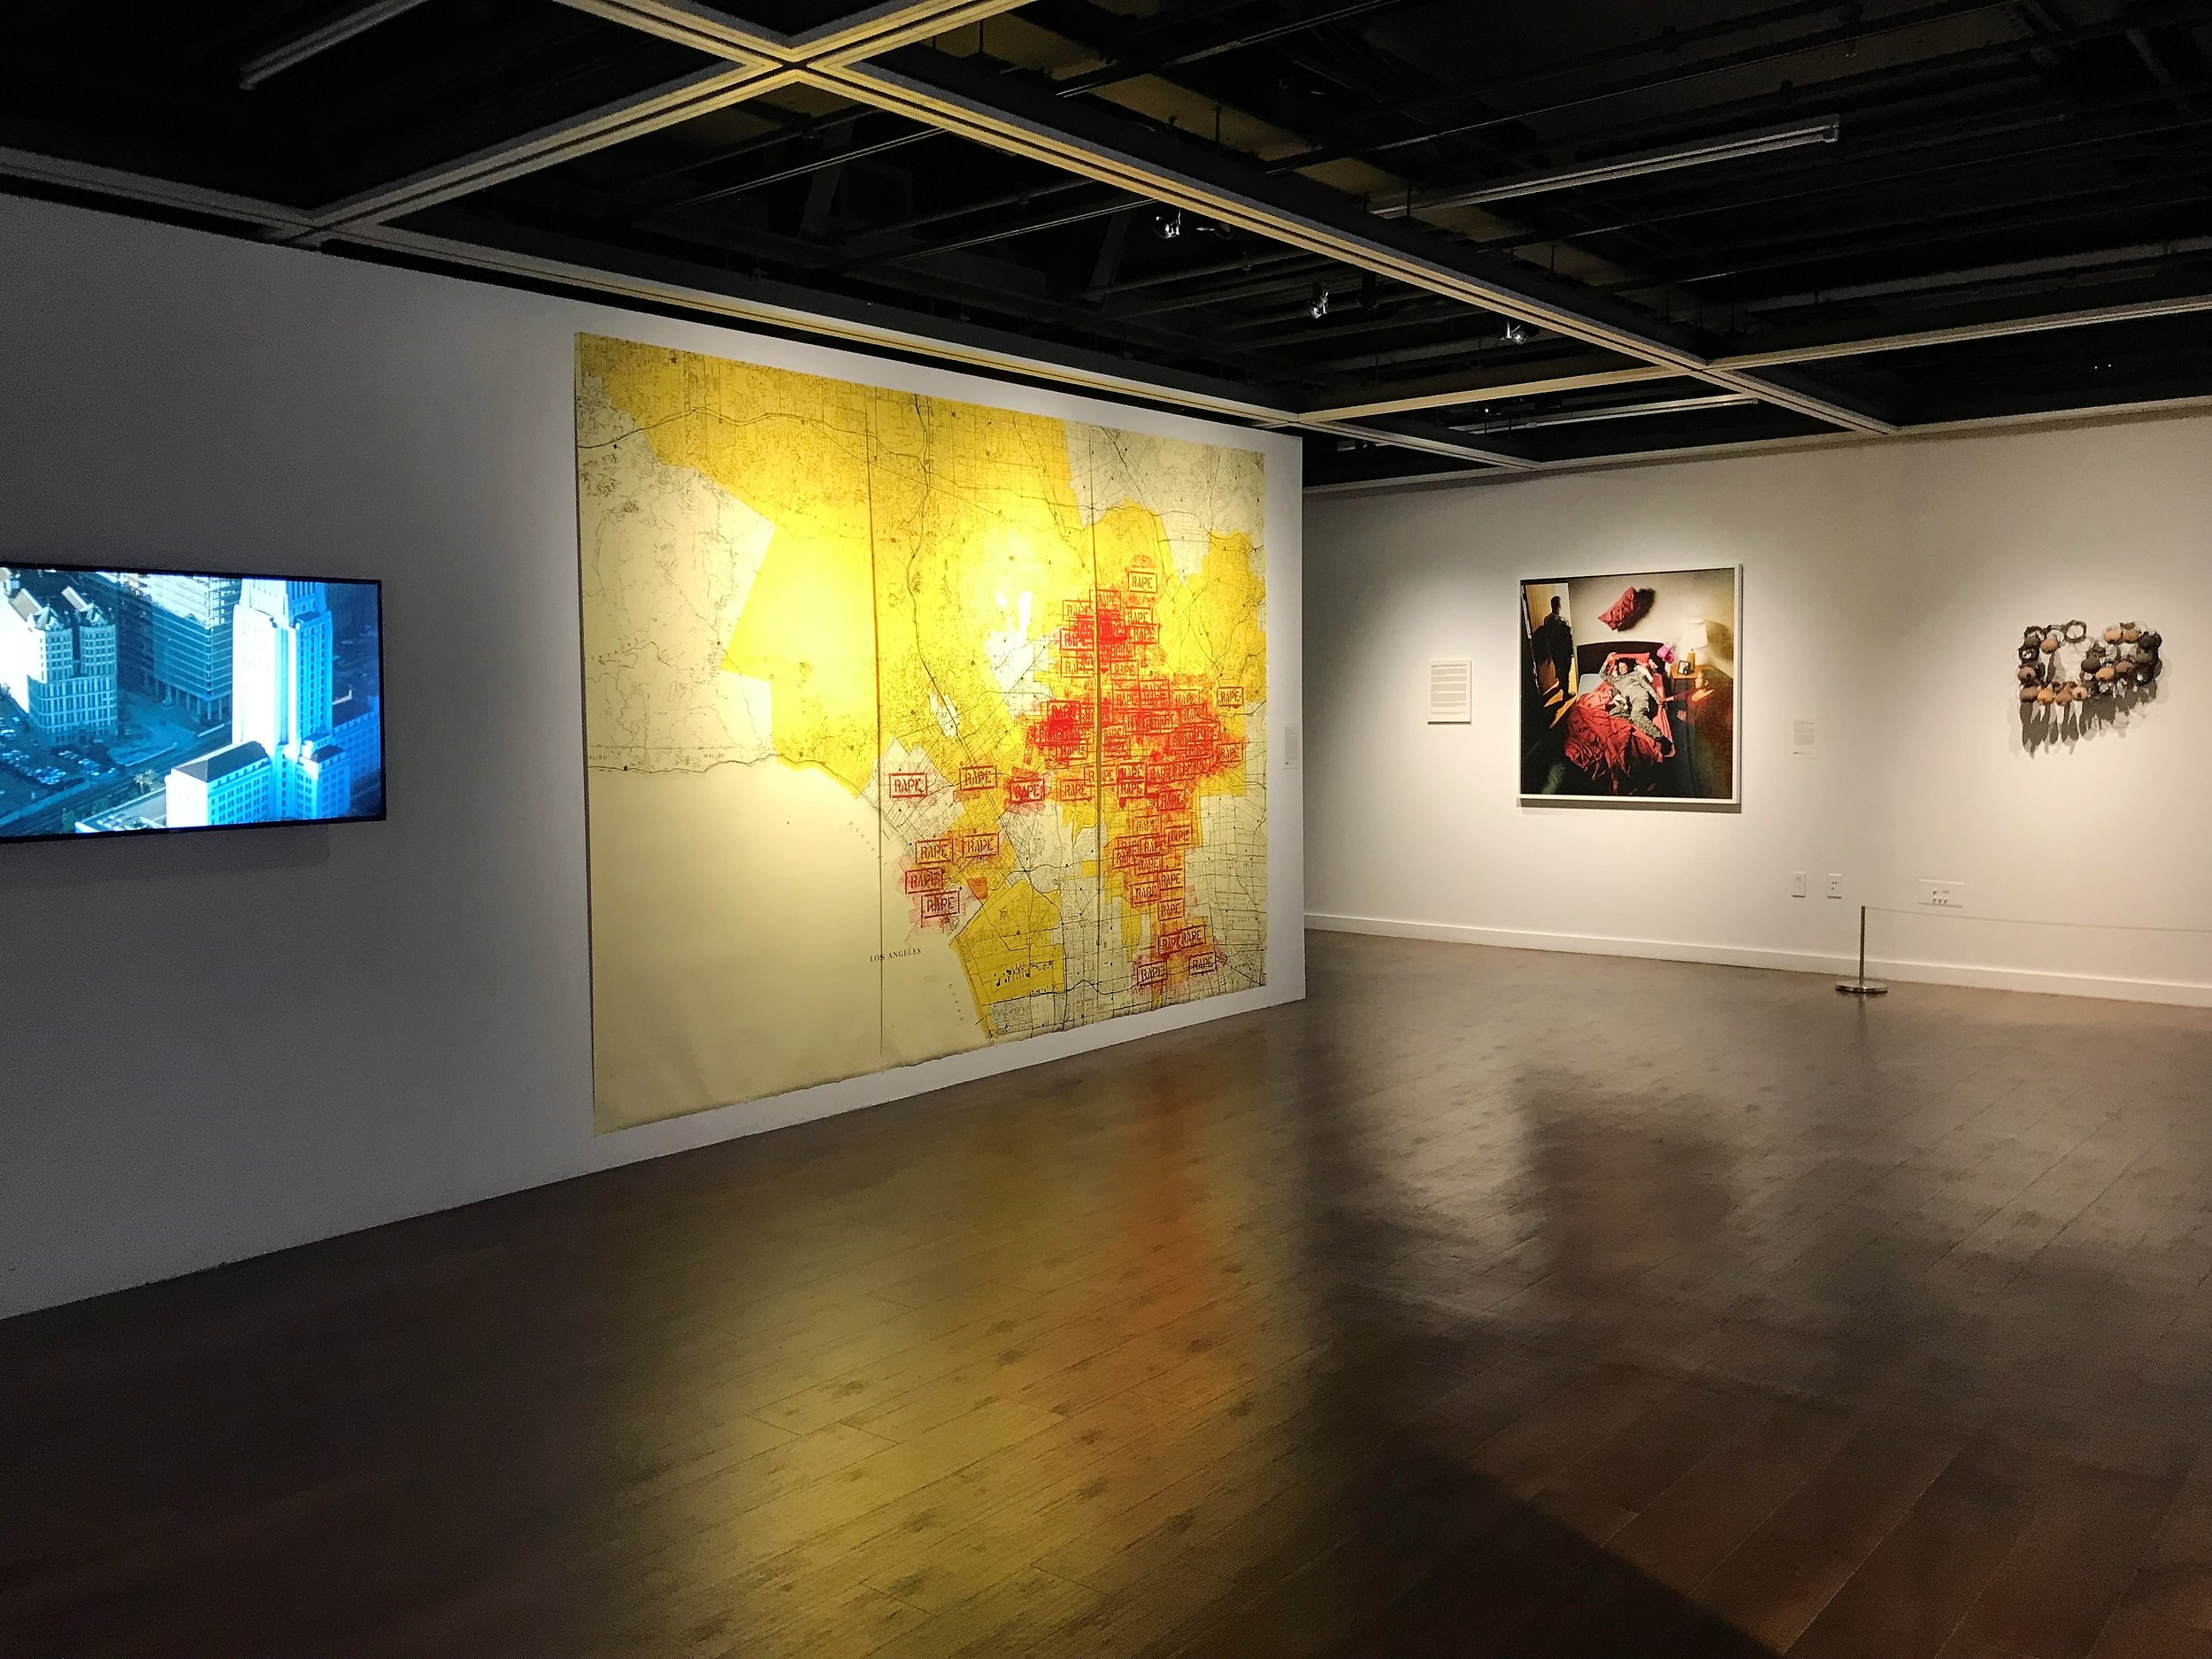 17_installation view, The Un-Heroic Act, Shiva Gallery JJC. Photo Monika Fabijanska